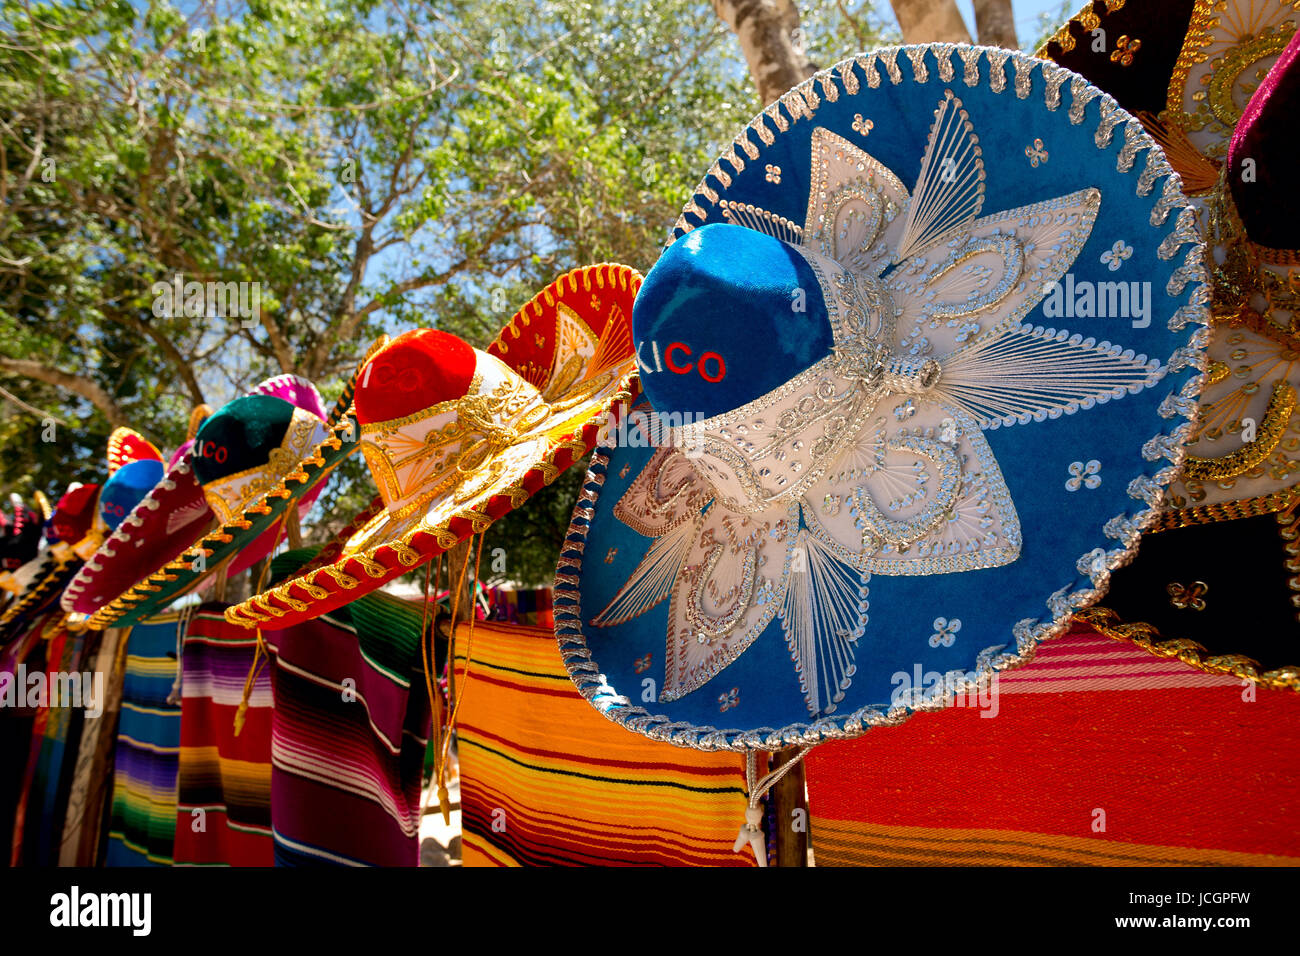 colorful Mexican sombreros and ponchos lined up outdoors - Stock Image